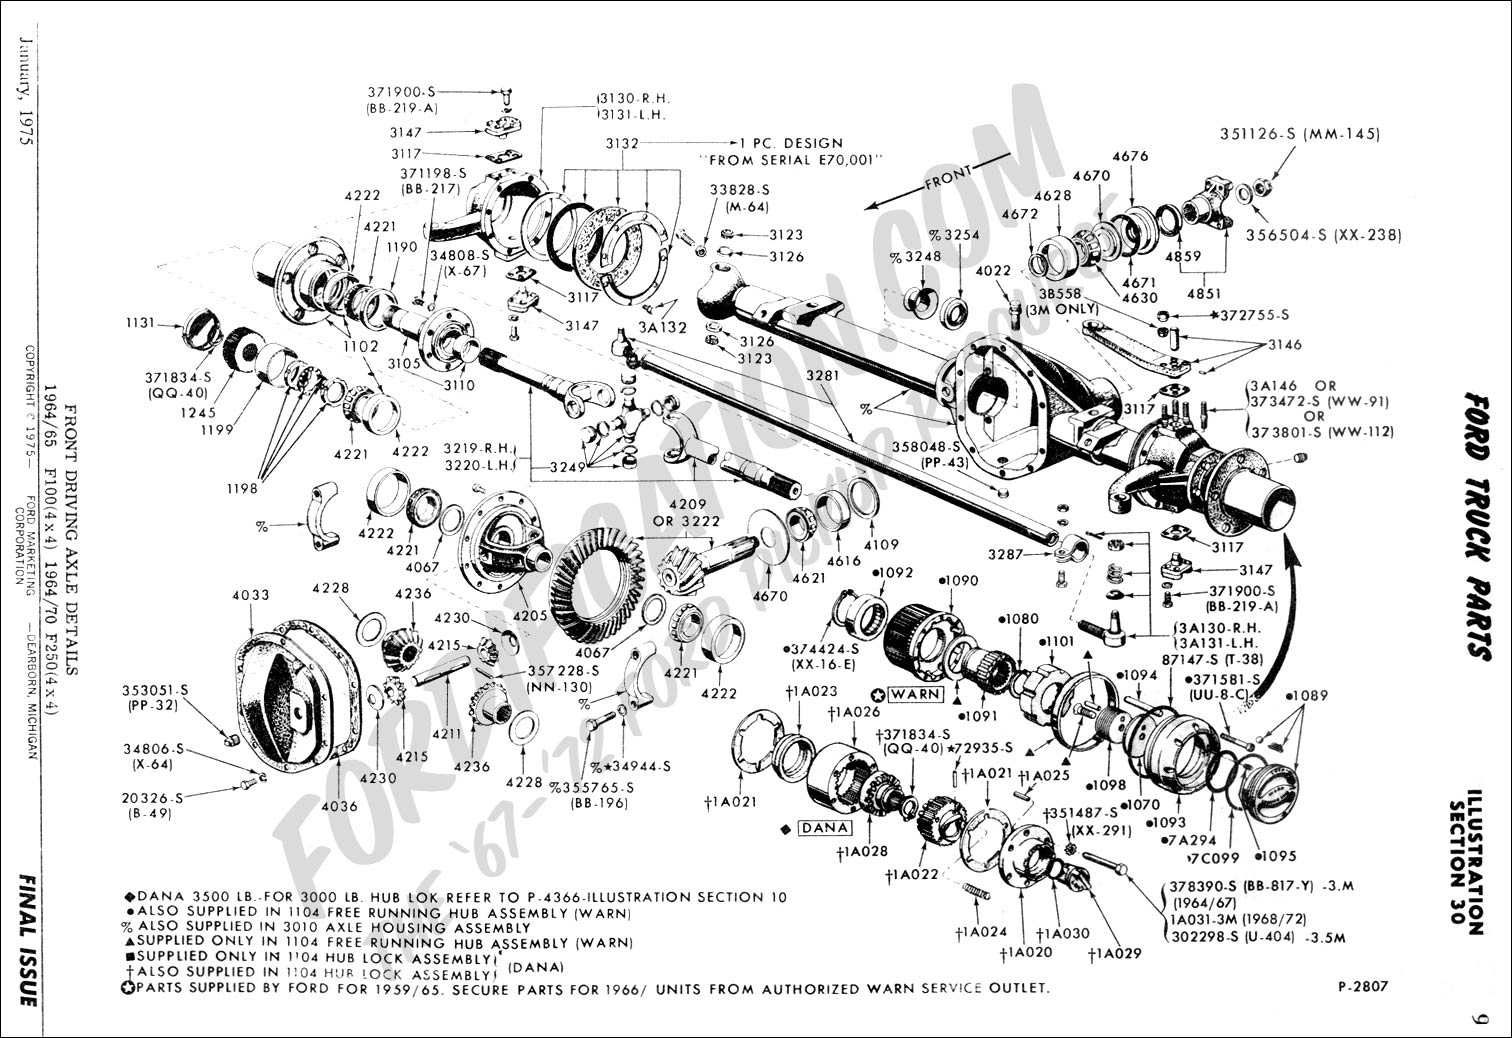 1957 Thunderbird Wiring Diagram Free Image Engine, 1957